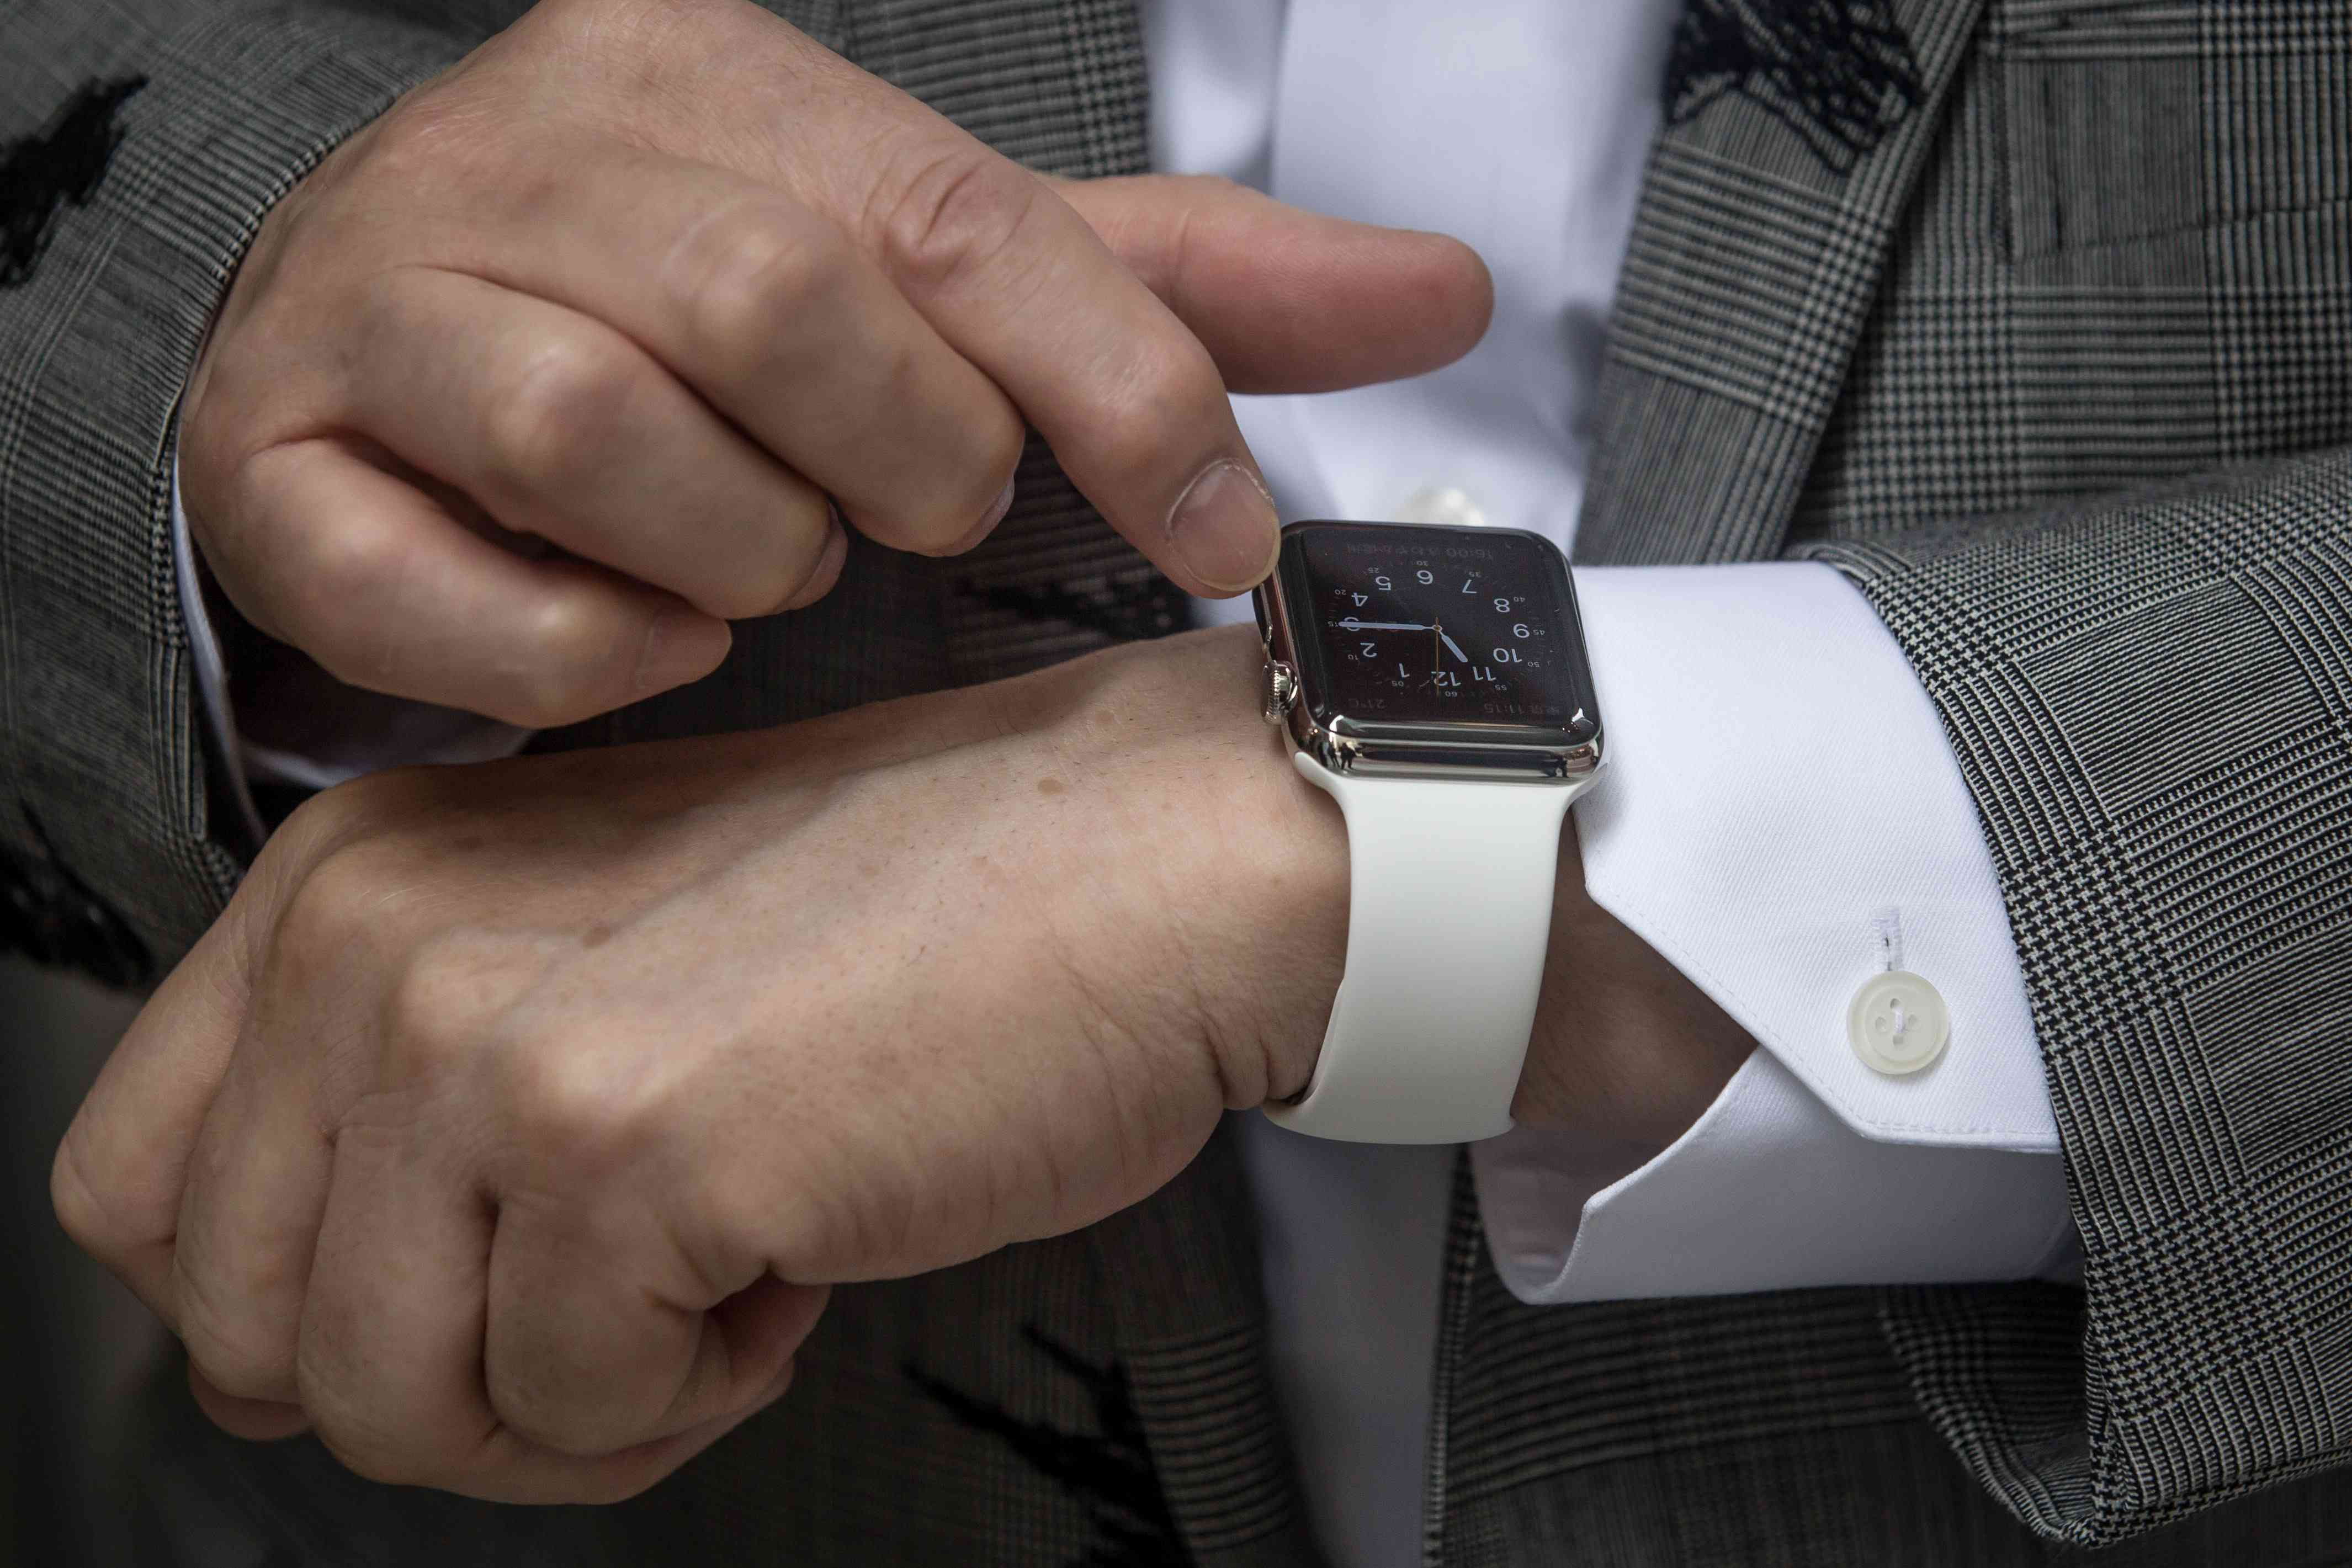 Apple Watch on a man's wrist about to be powered down